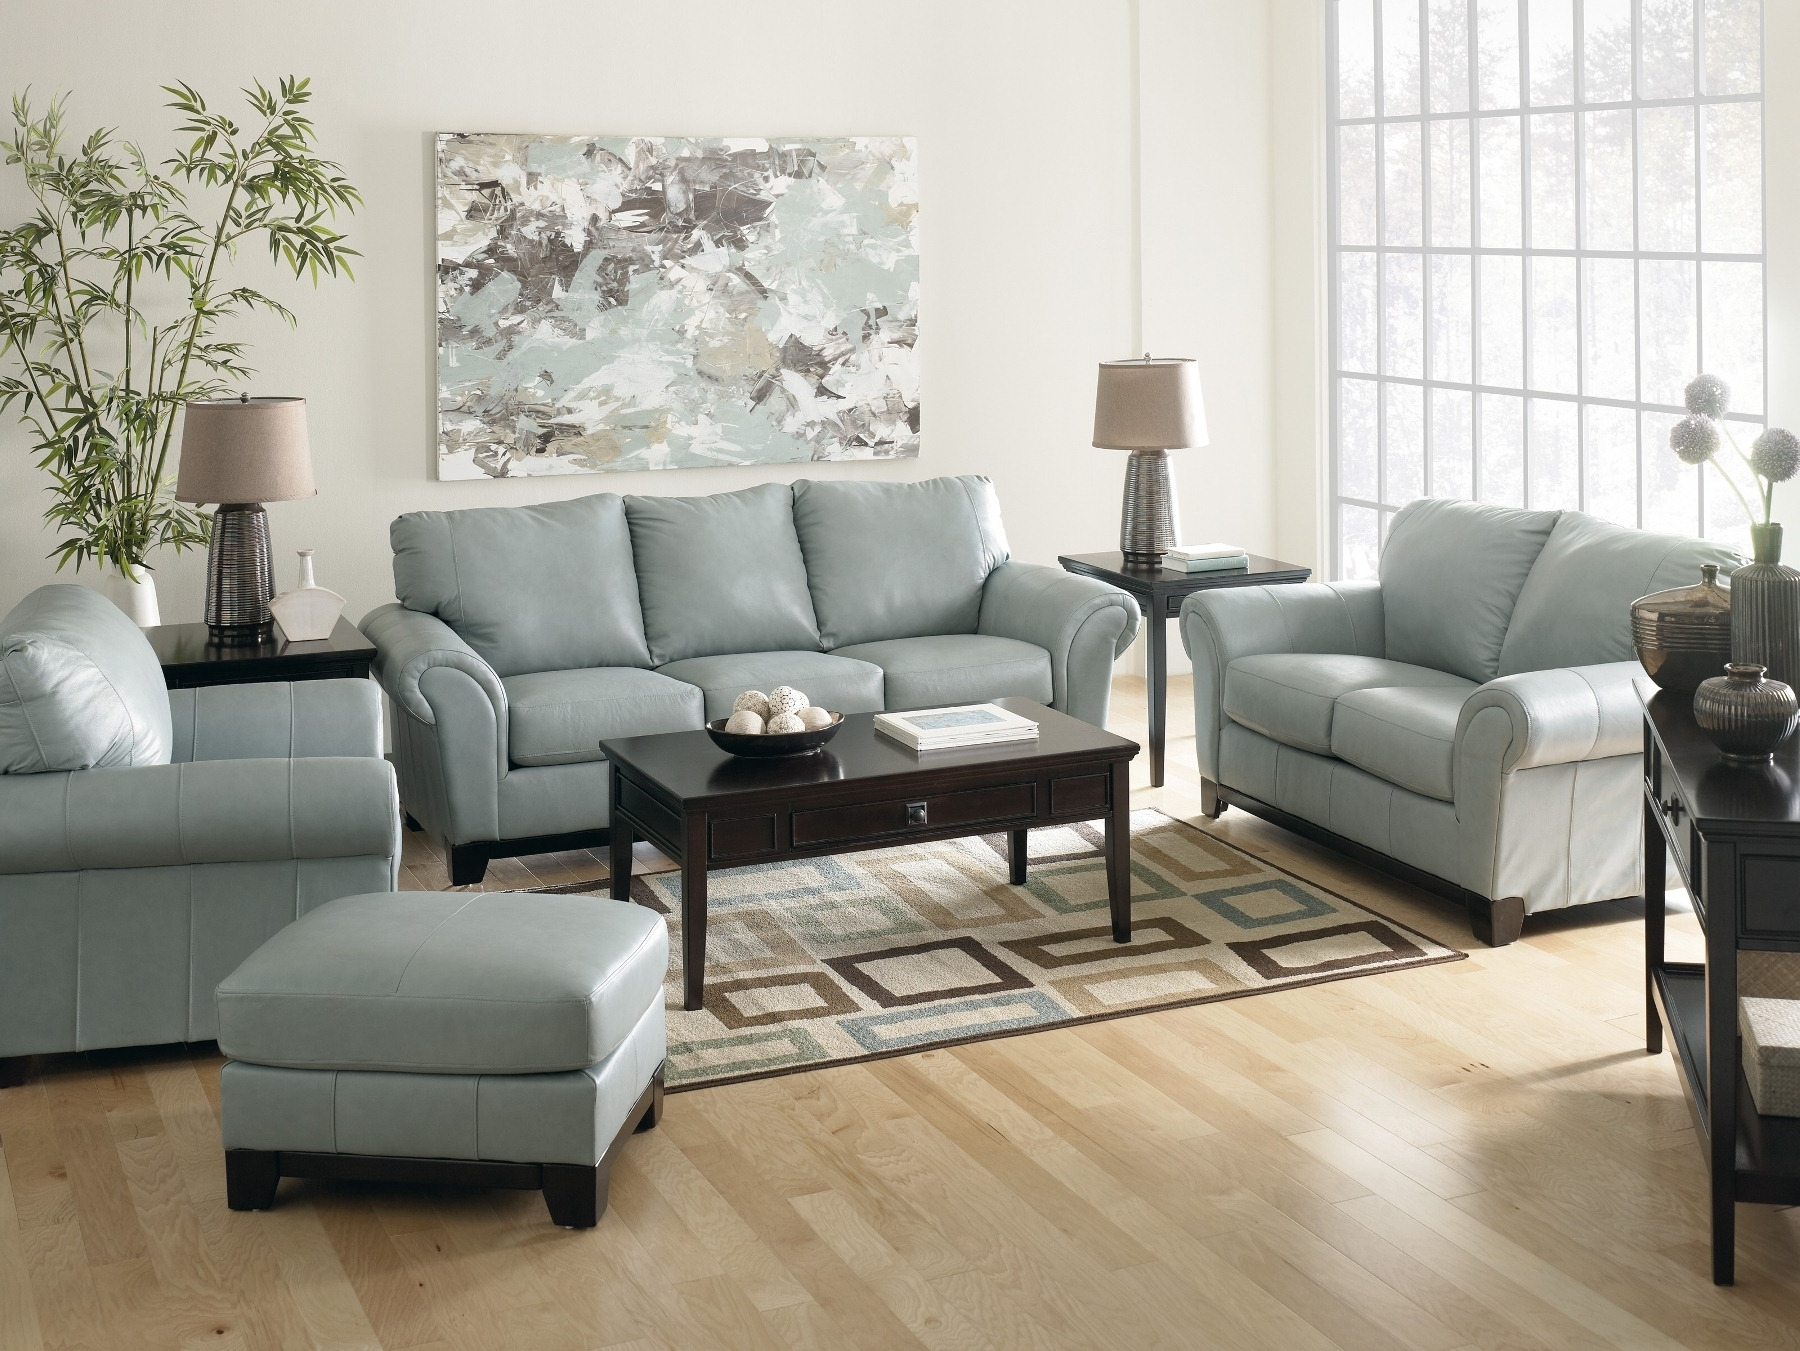 Trendy Sofa : Leather Sleeper Sofa Sky Blue Sofa Leather Furniture Dark In Blue Sofa Chairs (View 17 of 20)